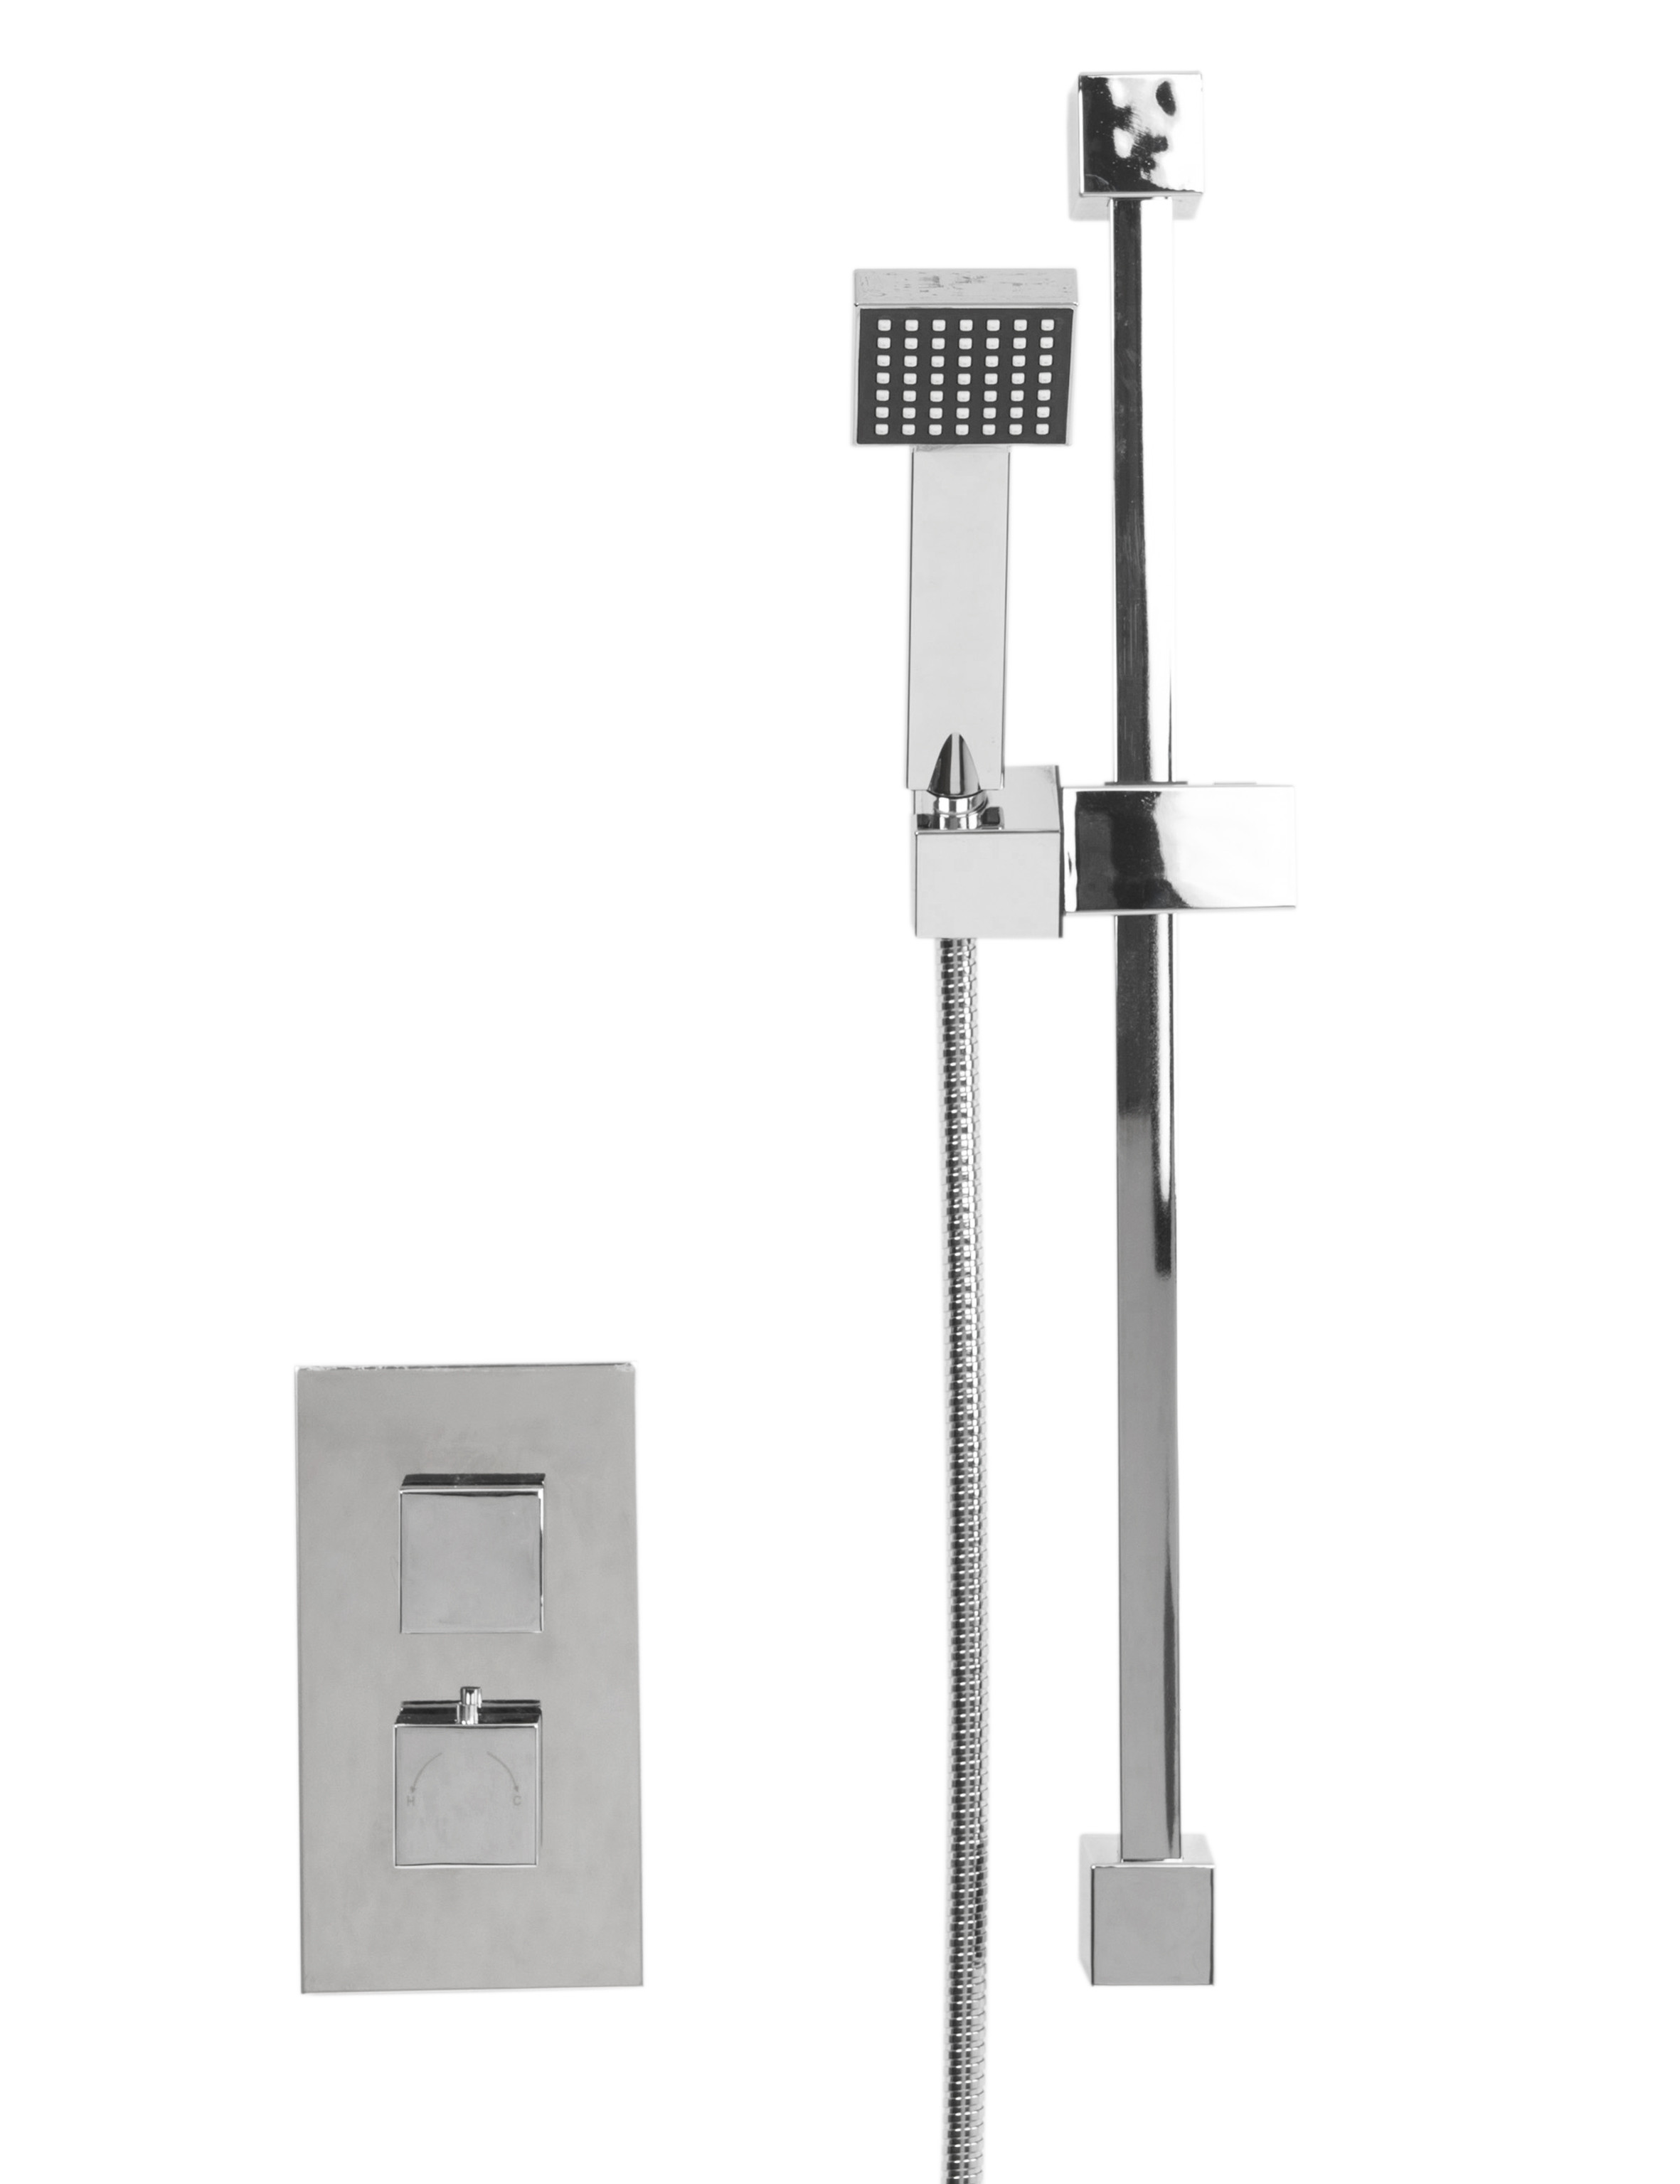 Cubix Twin Thermostatic Valve With Thames Slide Rail Kit & Square Shower Elbow